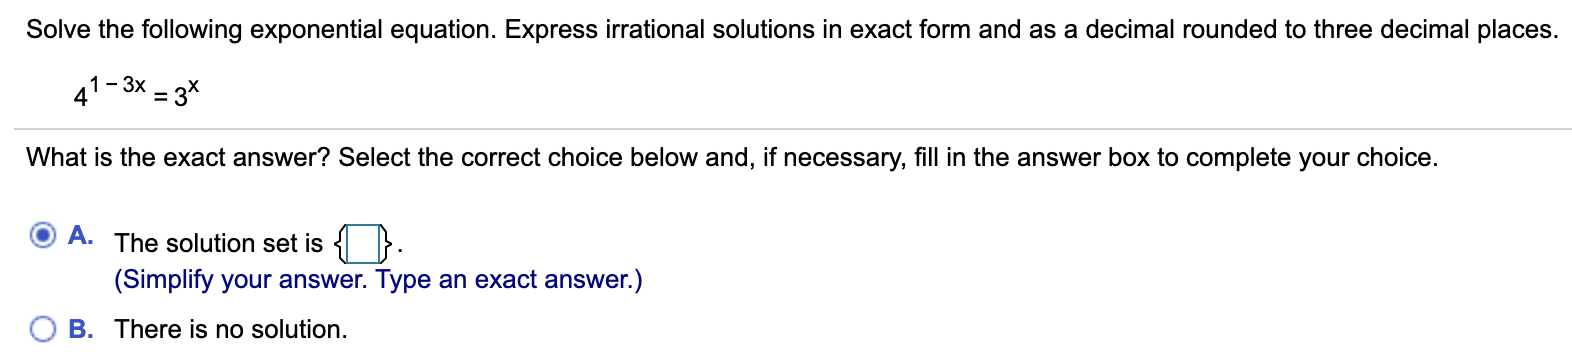 Solve the following exponential equation. Express irrational solutions in exact form and as a decimal rounded to three decimal places. 1-3x - 3* 41- What is the exact answer? Select the correct choice below and, if necessary, fill in the answer box to complete your choice. A. The solution set is { }. (Simplify your answer. Type an exact answer.) B. There is no solution.